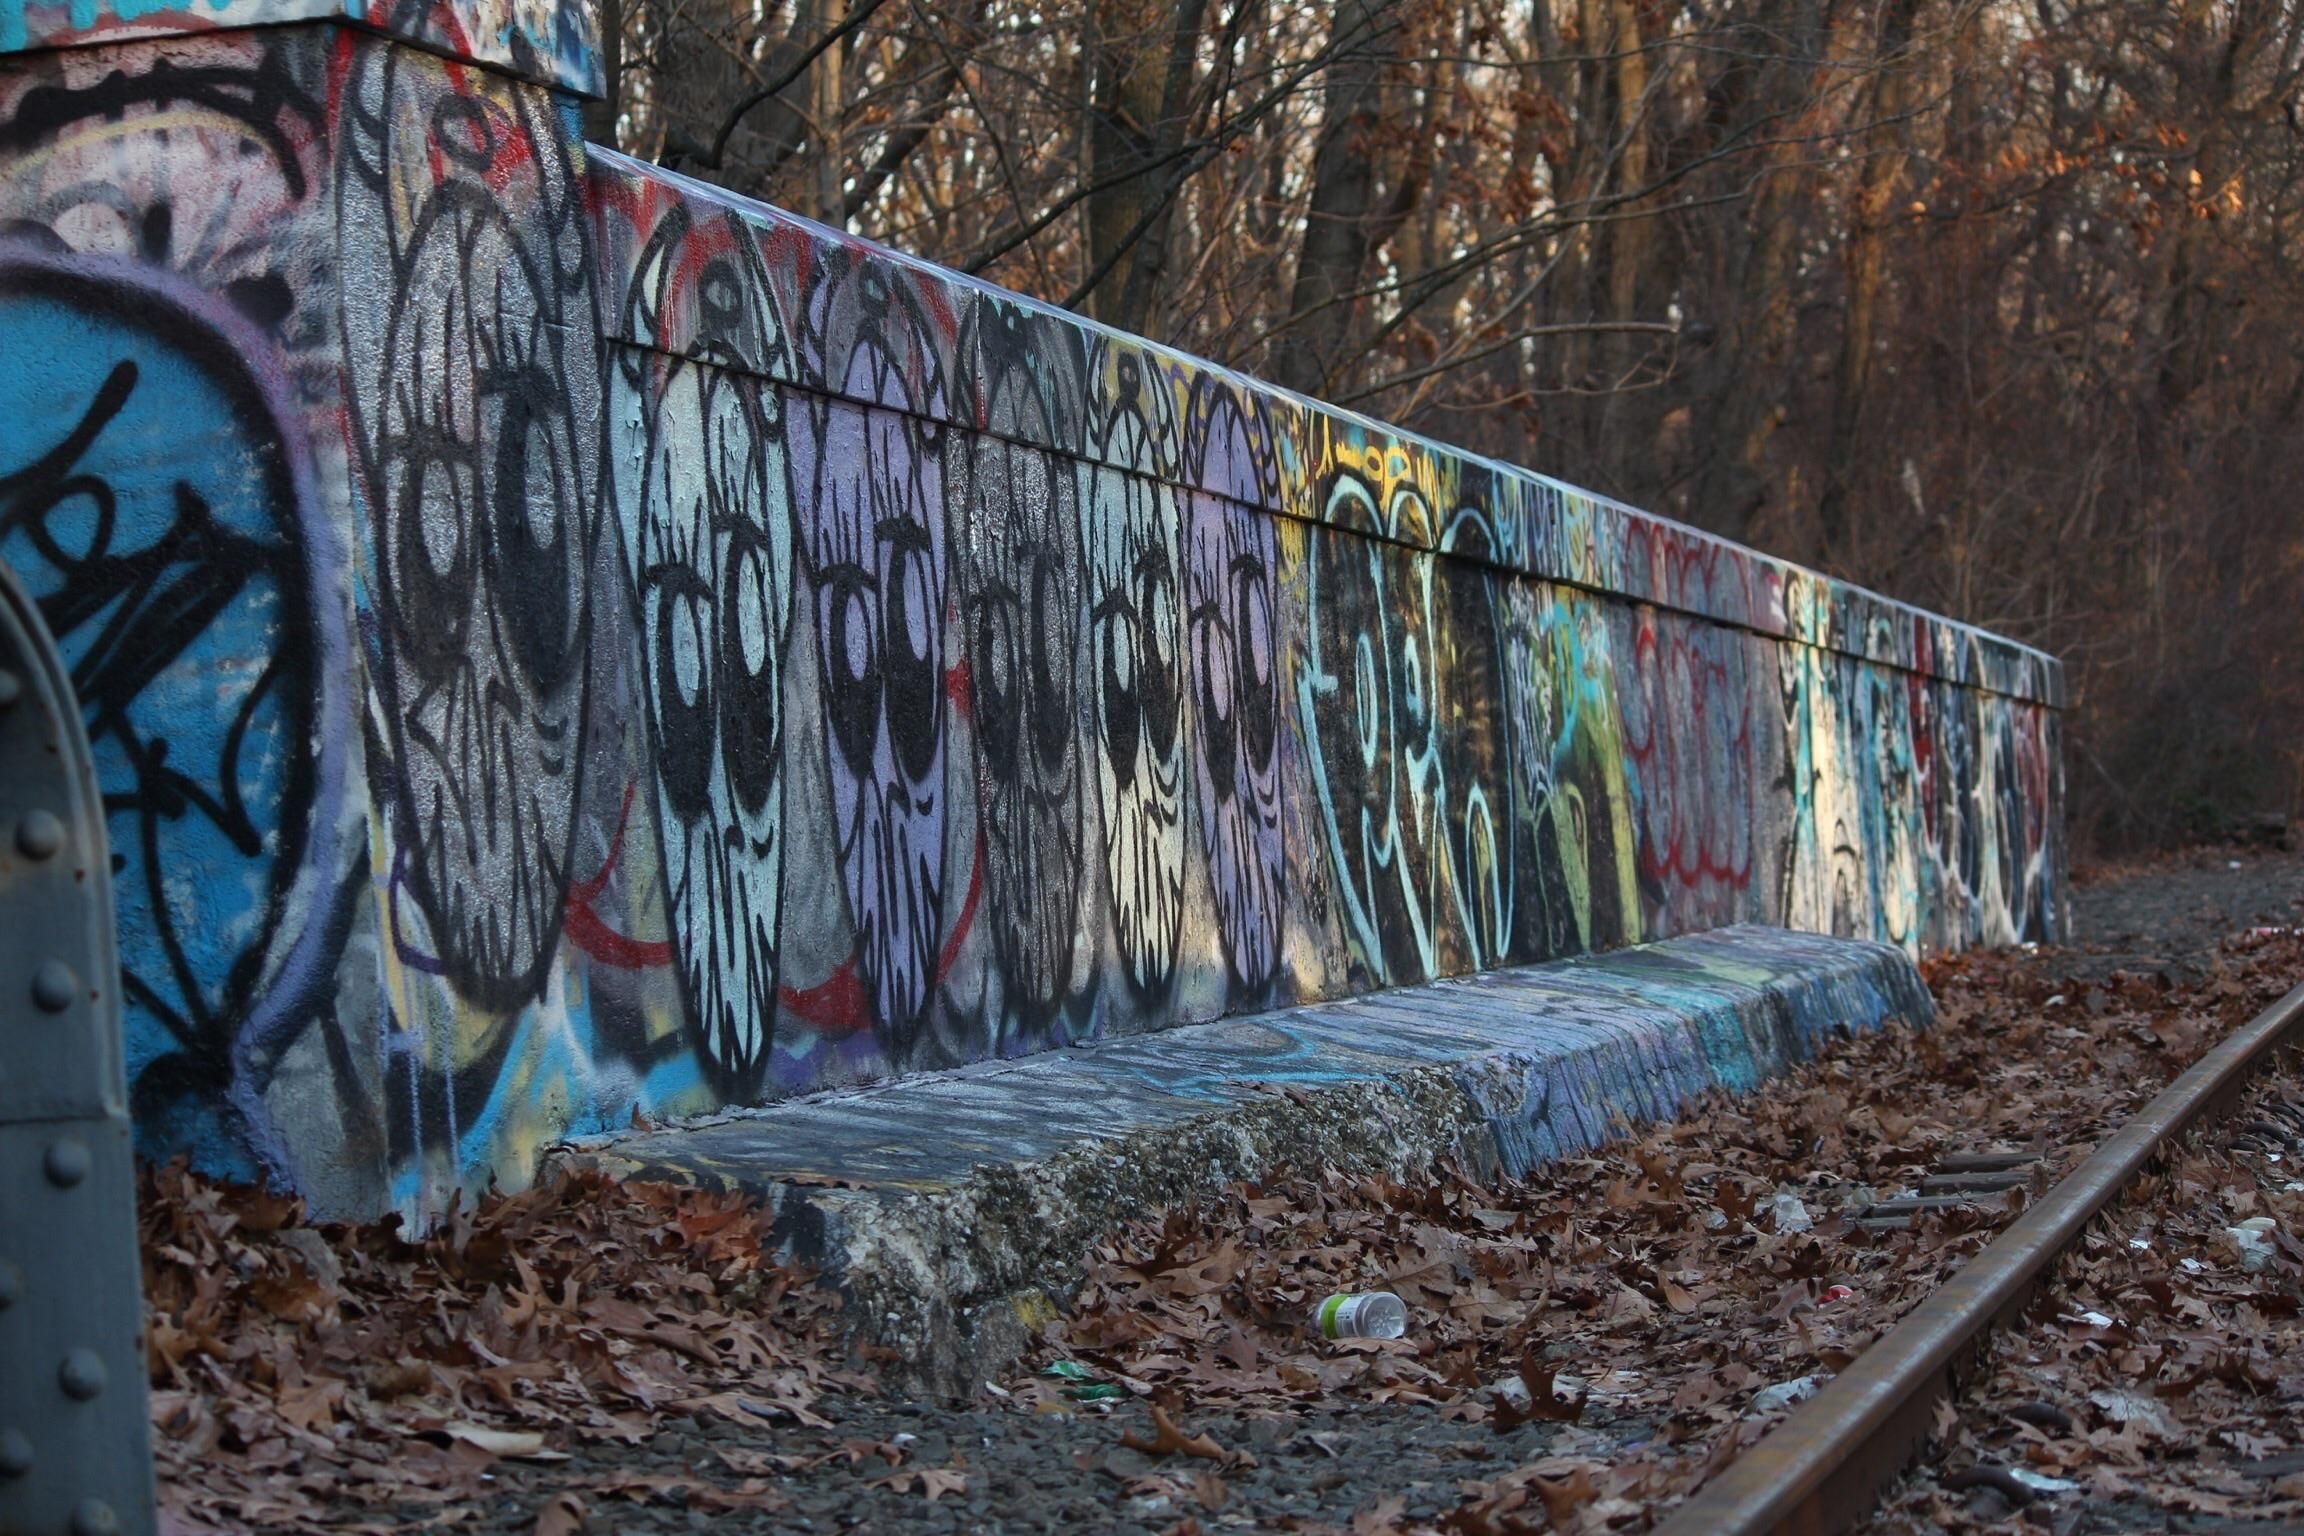 Graffiti wall in queens ny - Itap Of Graffiti Along Abandoned Track In Forest Park Queens Ny Http